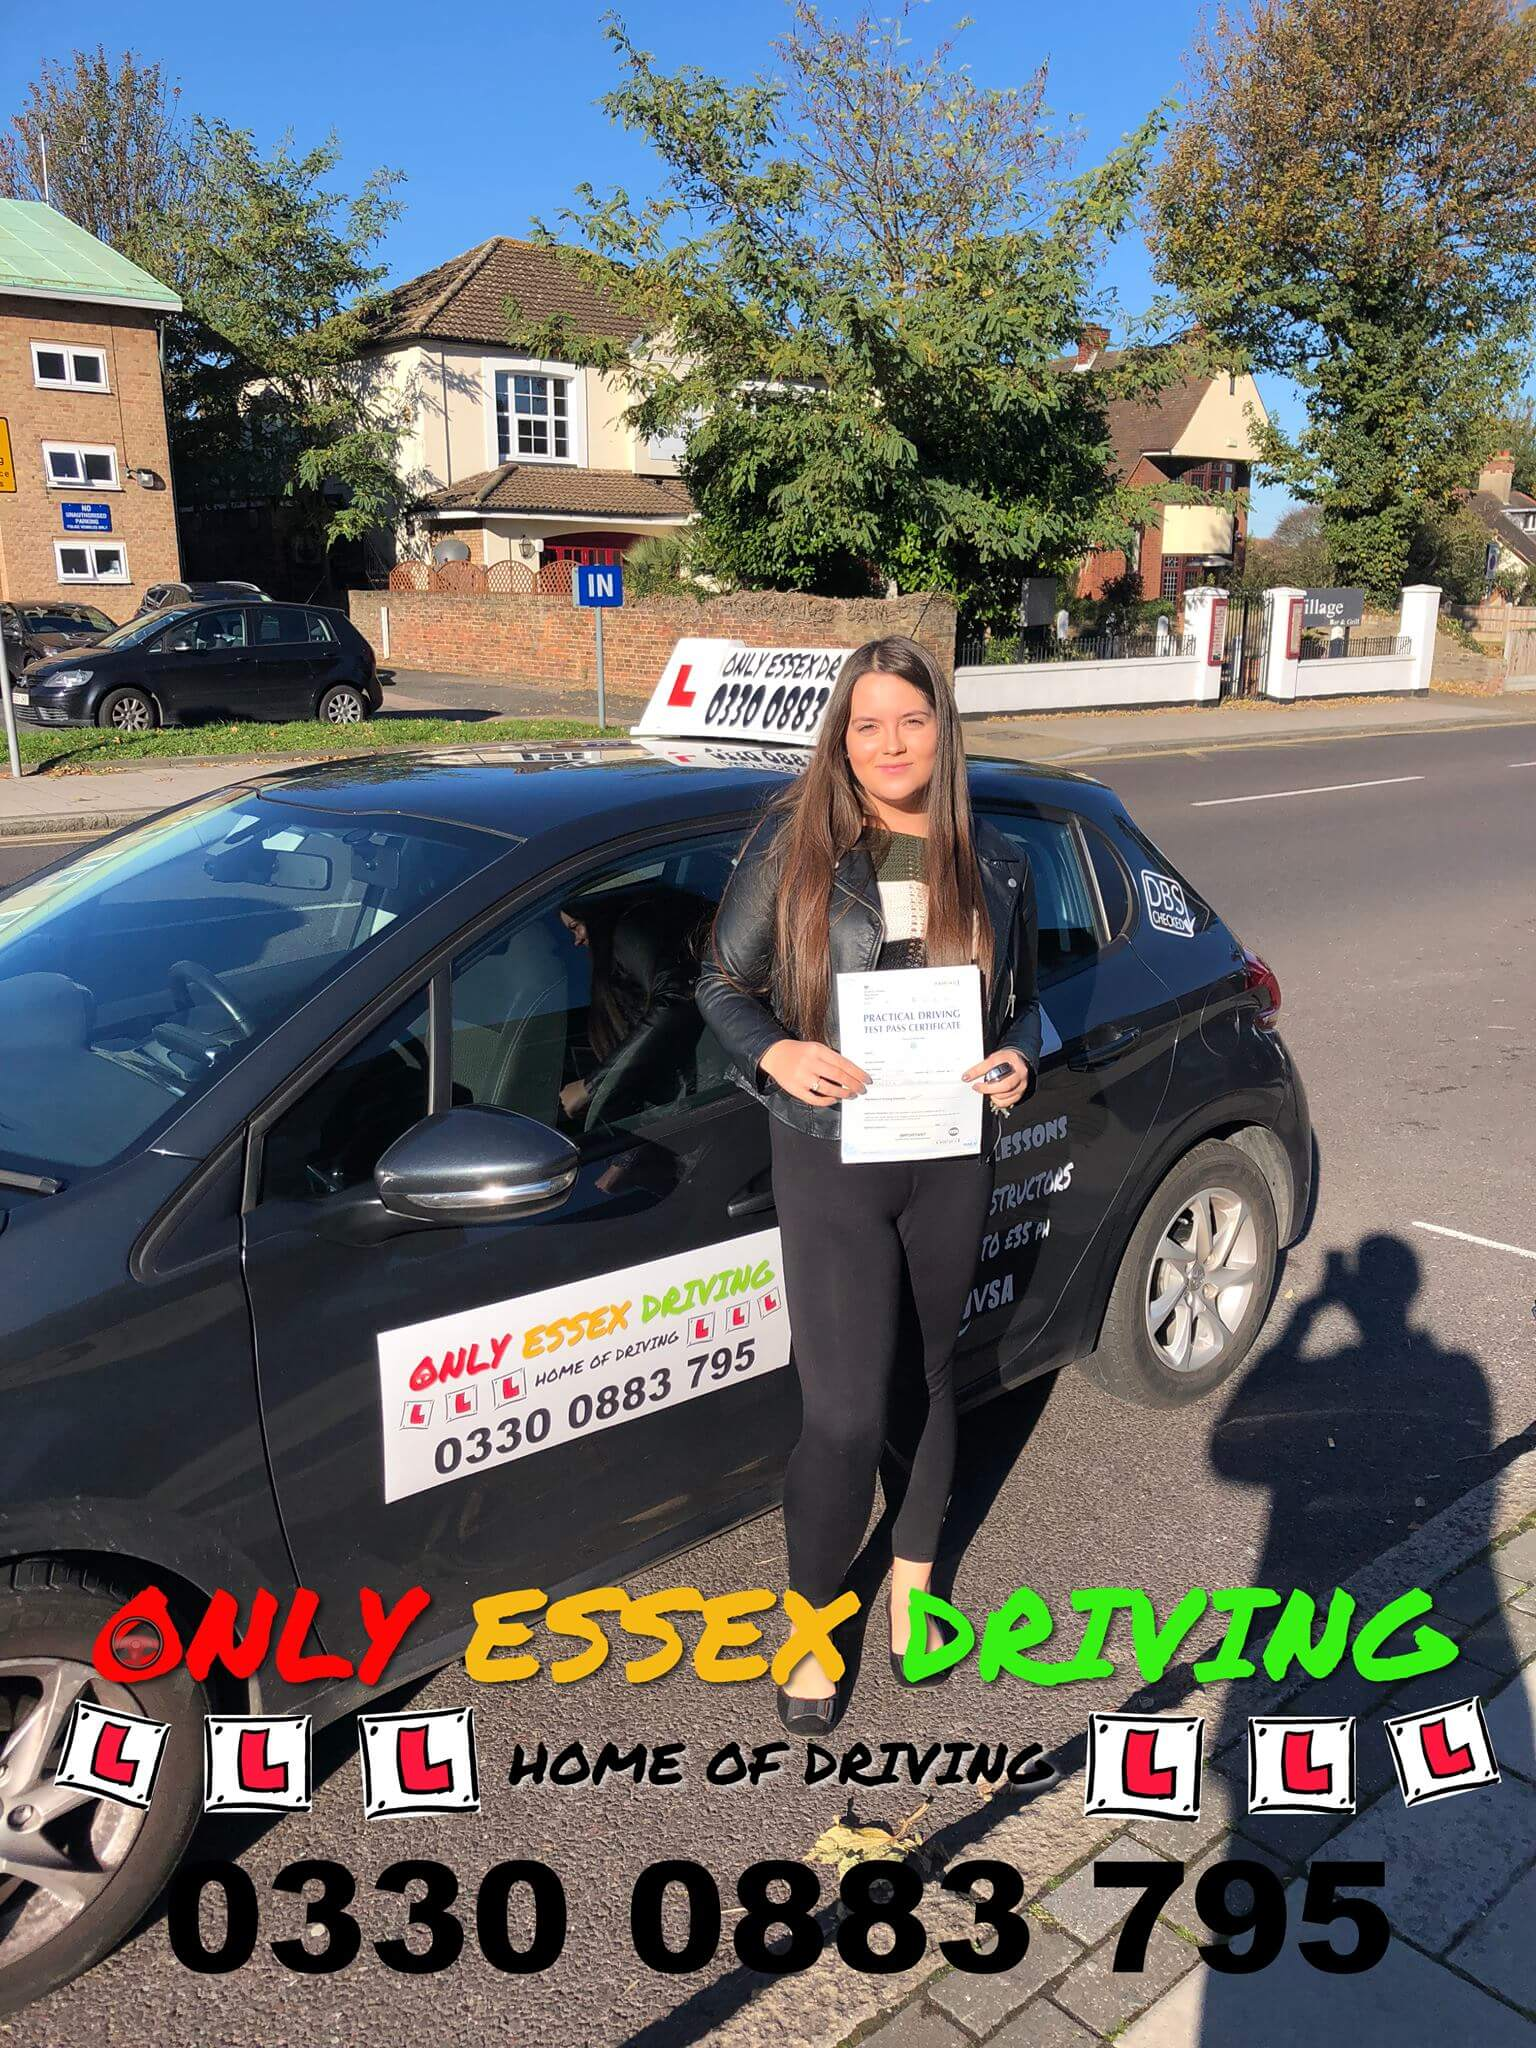 Well done to Megan for passing her driving test at Hornchurch test centre